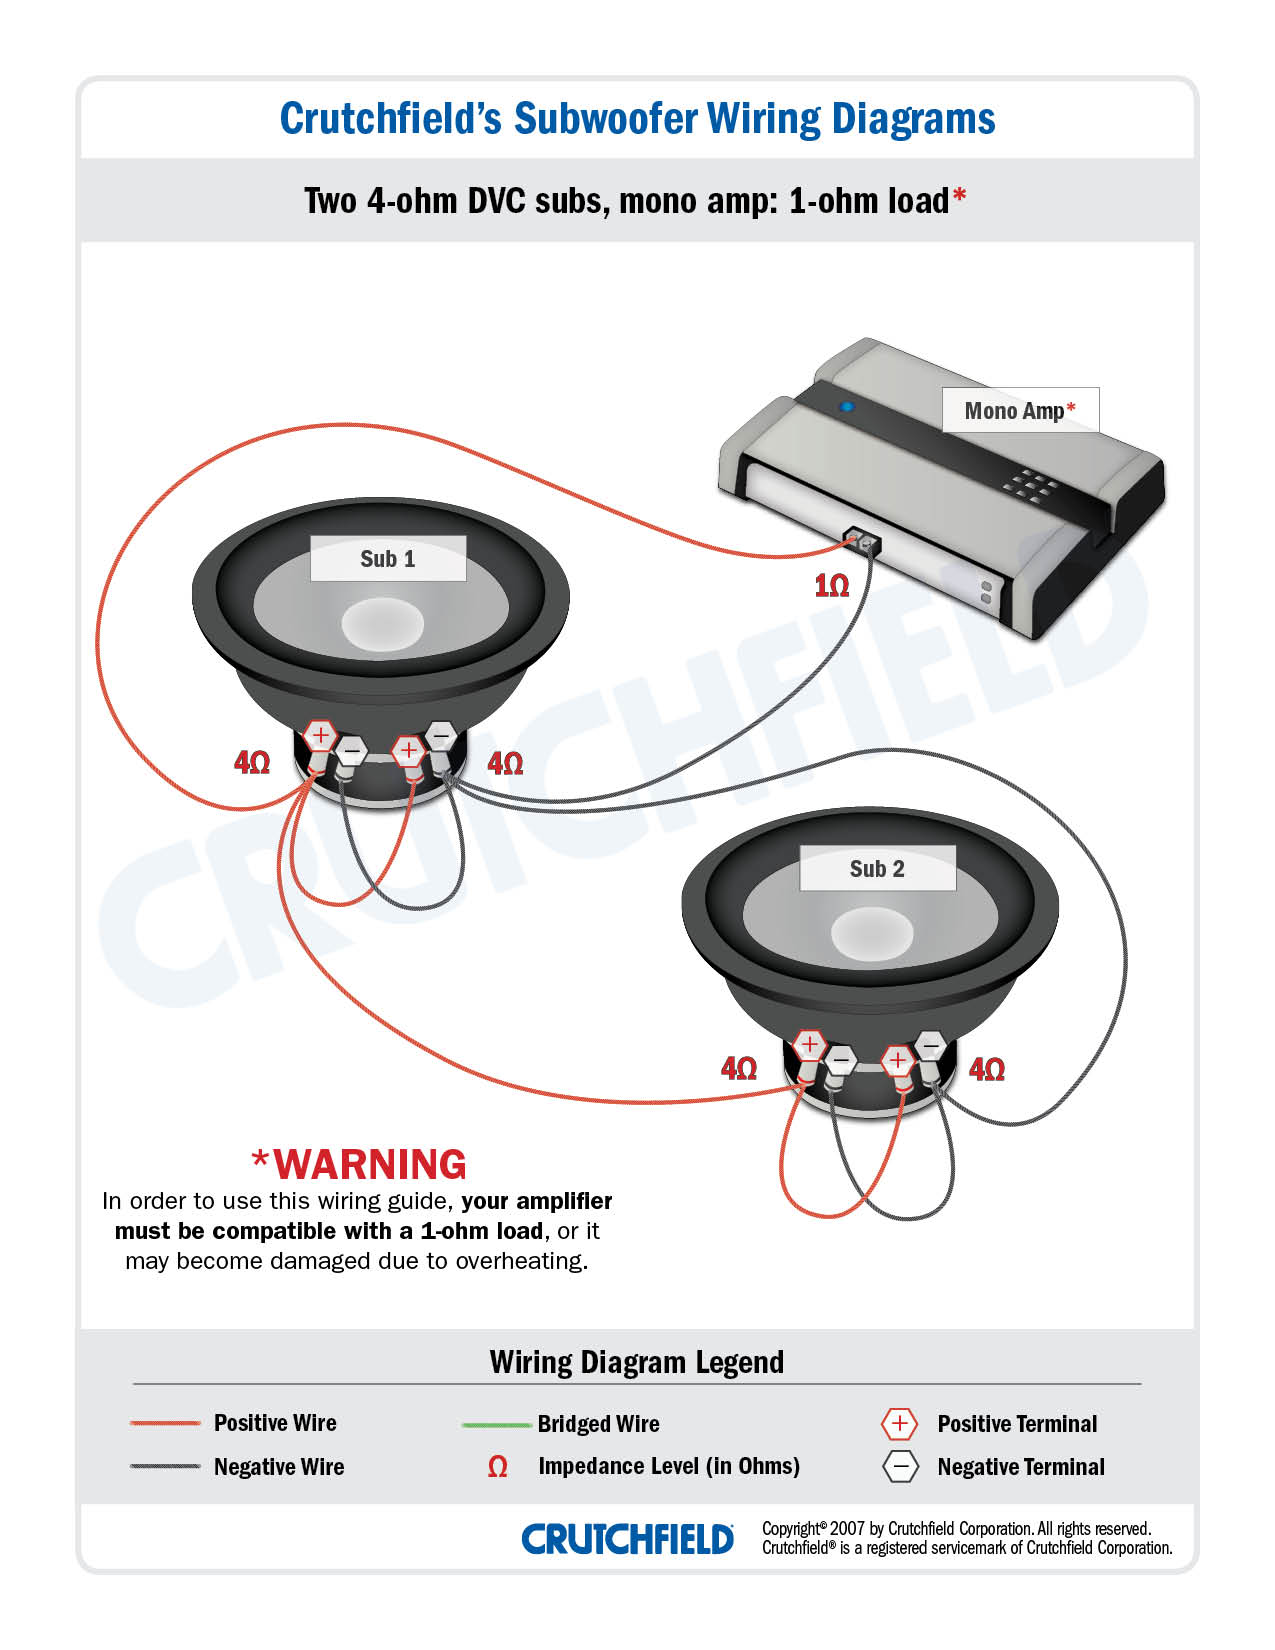 Amplifier Wiring Diagrams How To Add An Your Car Audio Stereo Jack Diagram Get Free Image About Greg Two Dvc 4 Ohm Subs Can Only Wired Together Form A